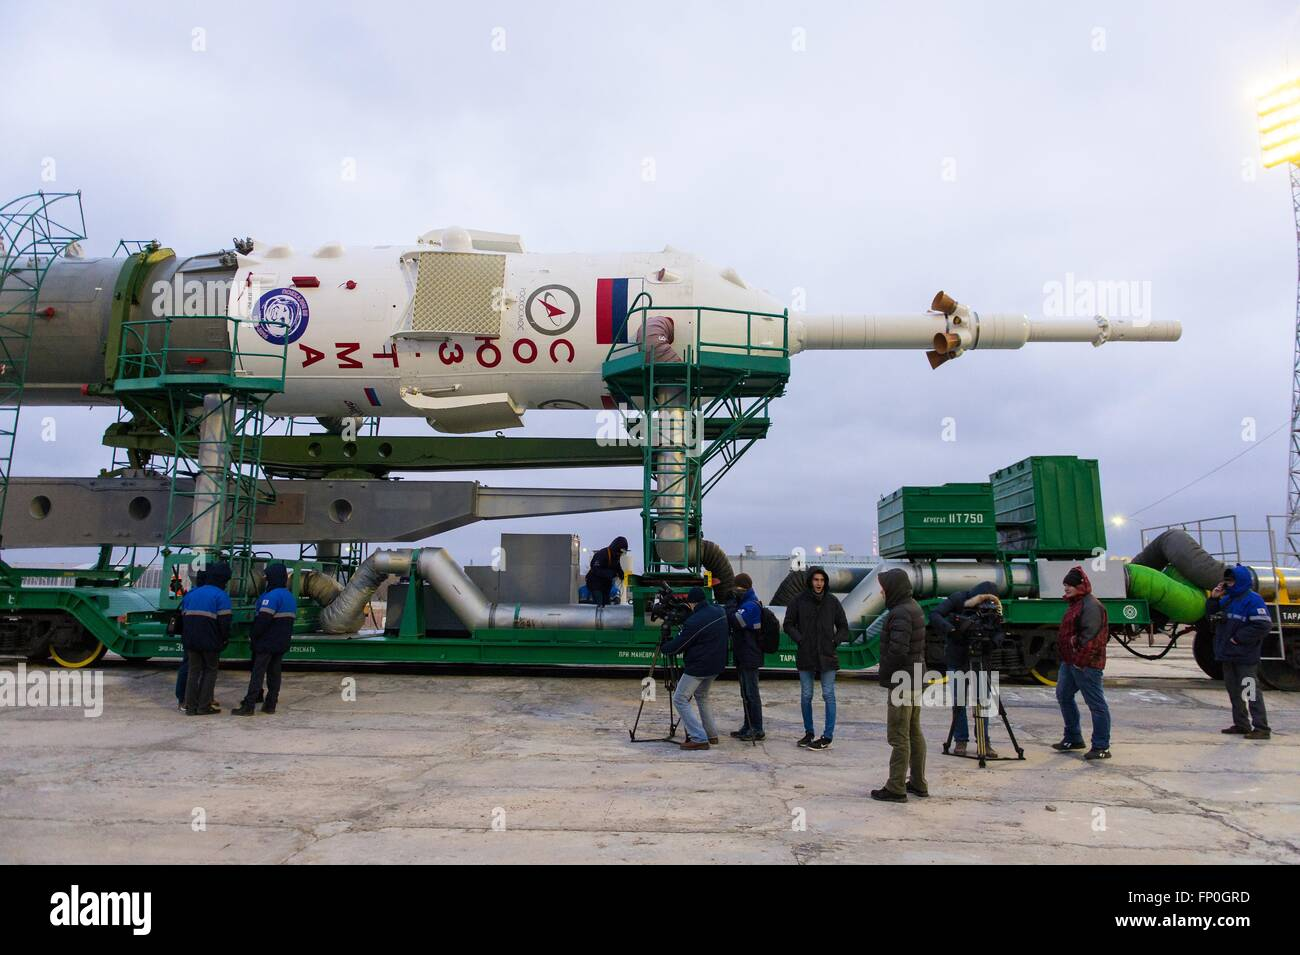 Baikonur, Kazakhstan. 16th Mar, 2016. The Soyuz TMA-20M spacecraft is joined to the lift arms on the launch pad Stock Photo